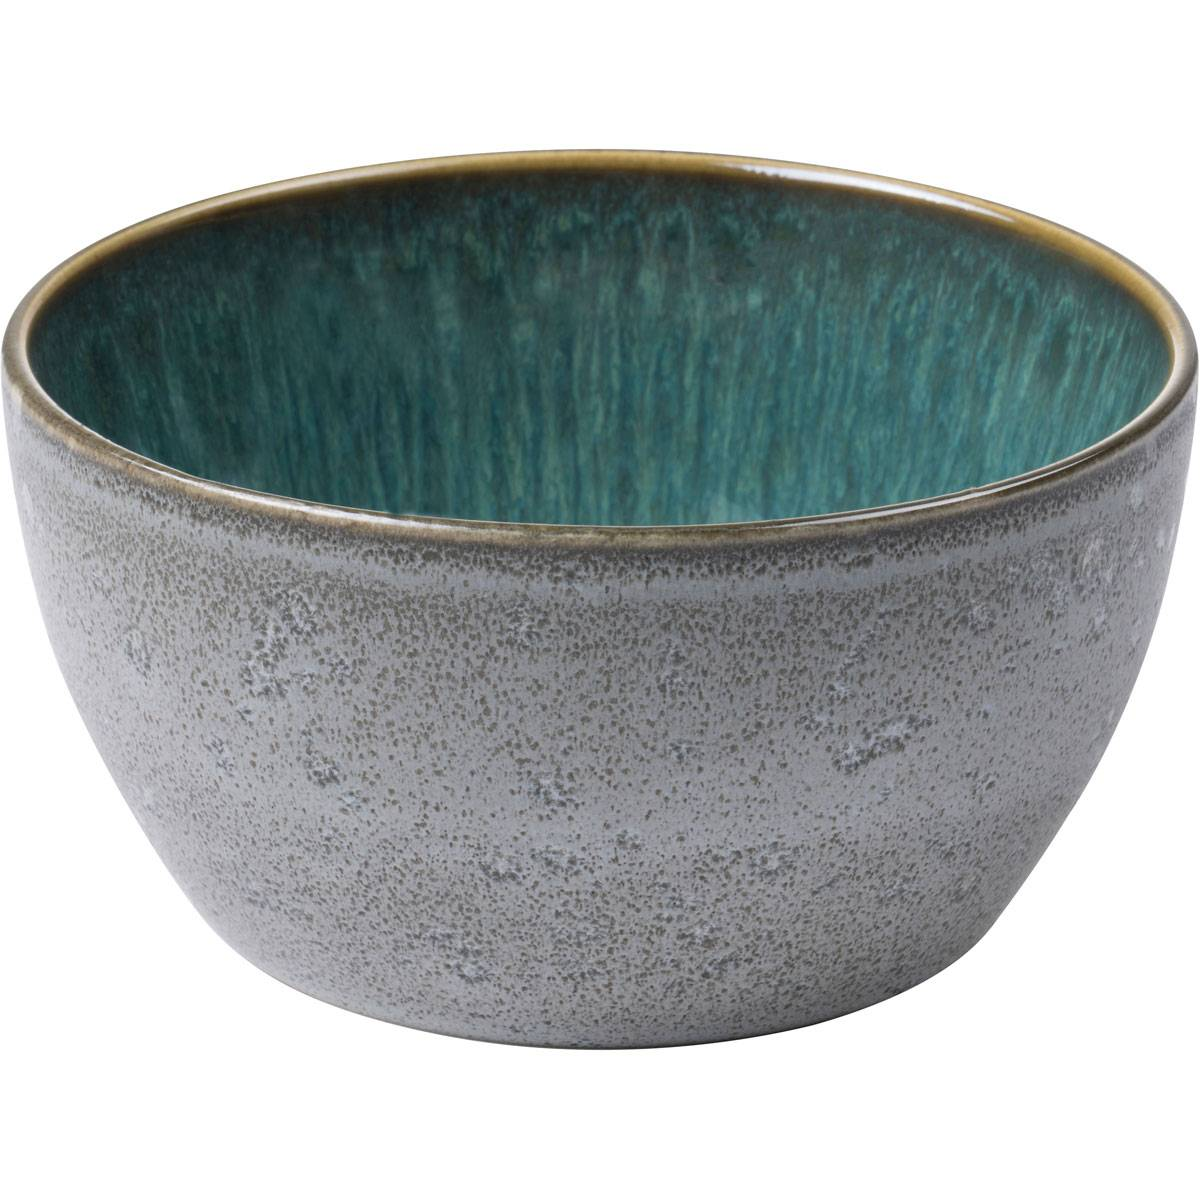 Bitz Bitz Bowl 14 cm, Grey/Green